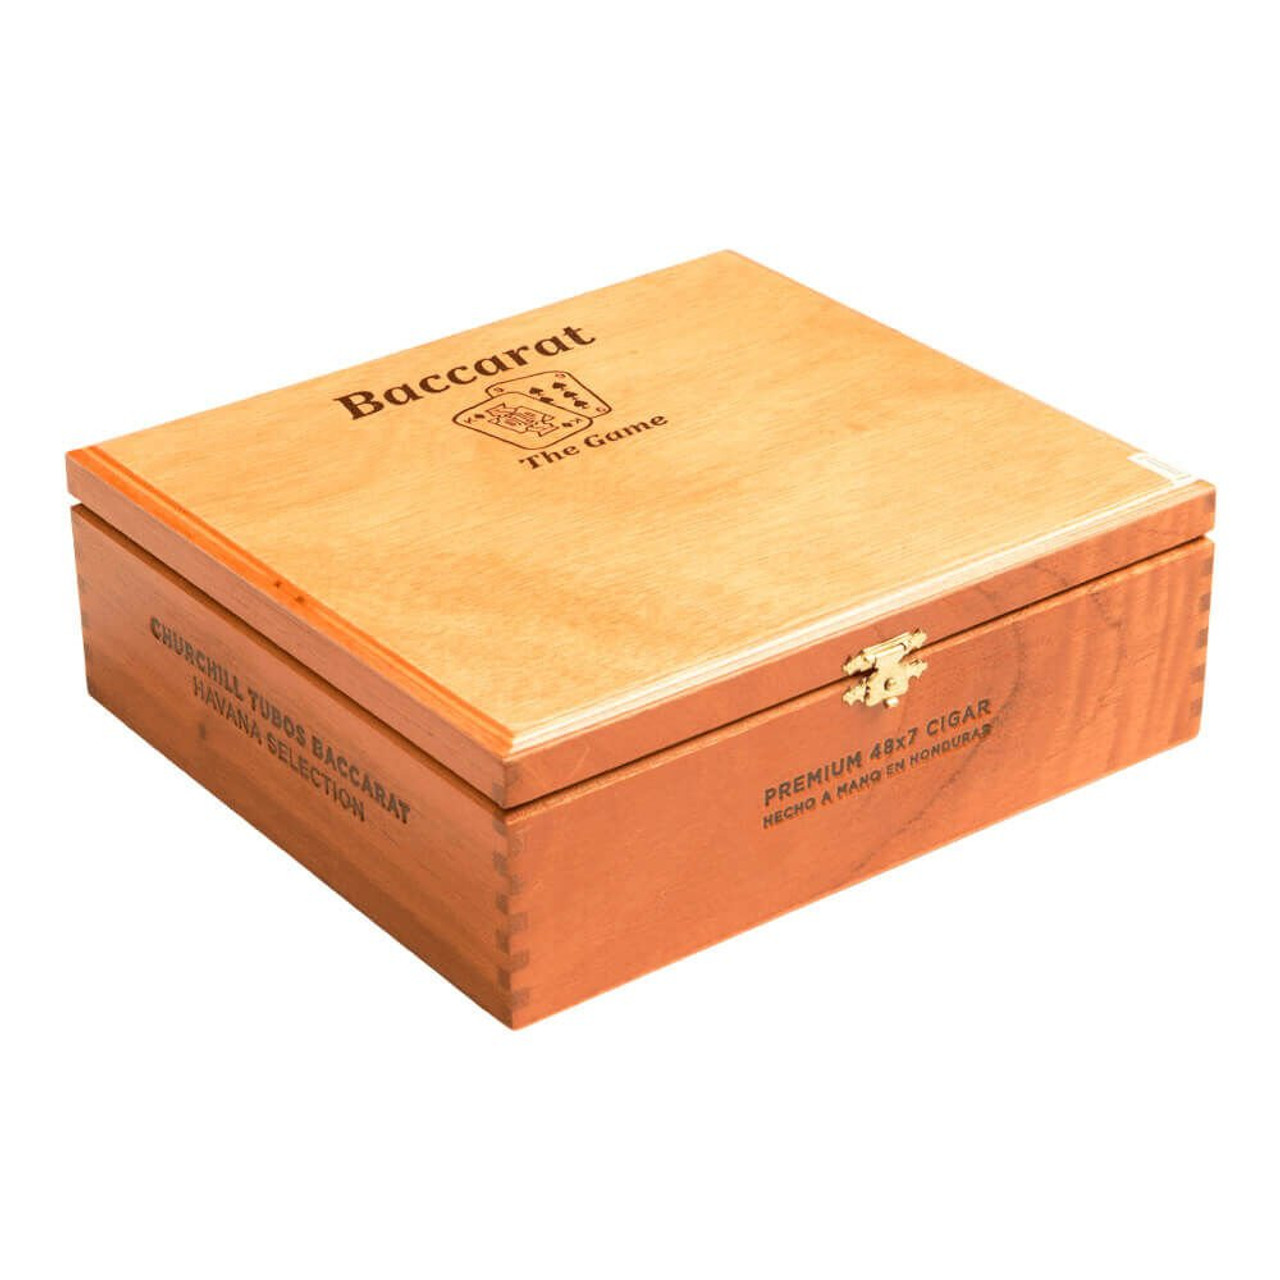 Baccarat Rothschild Tubo Cigars - 5.0 x 50 (Box of 25)